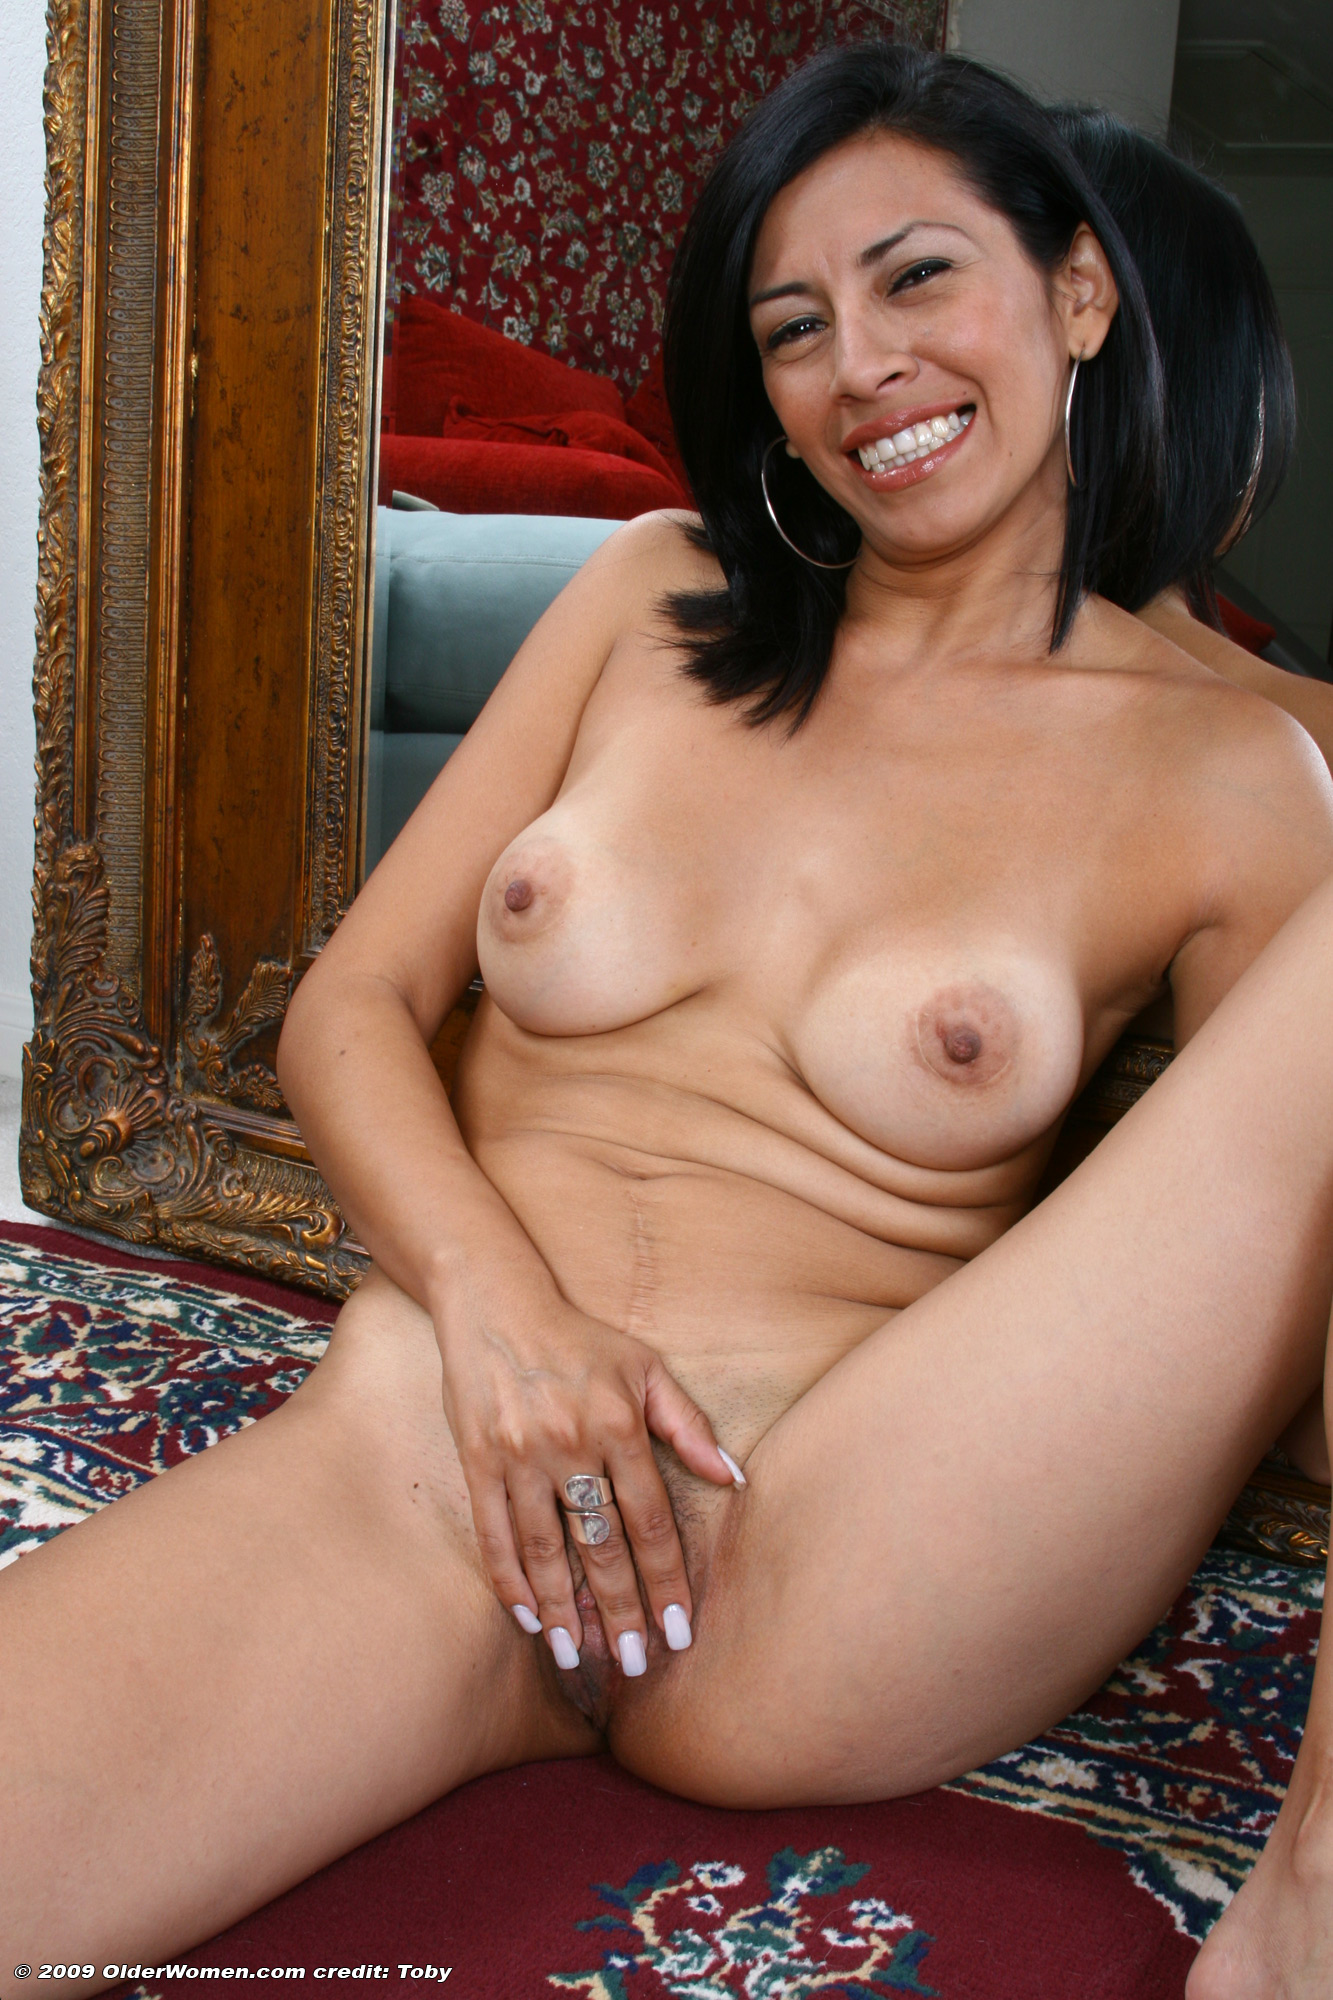 Authoritative old mature nude women